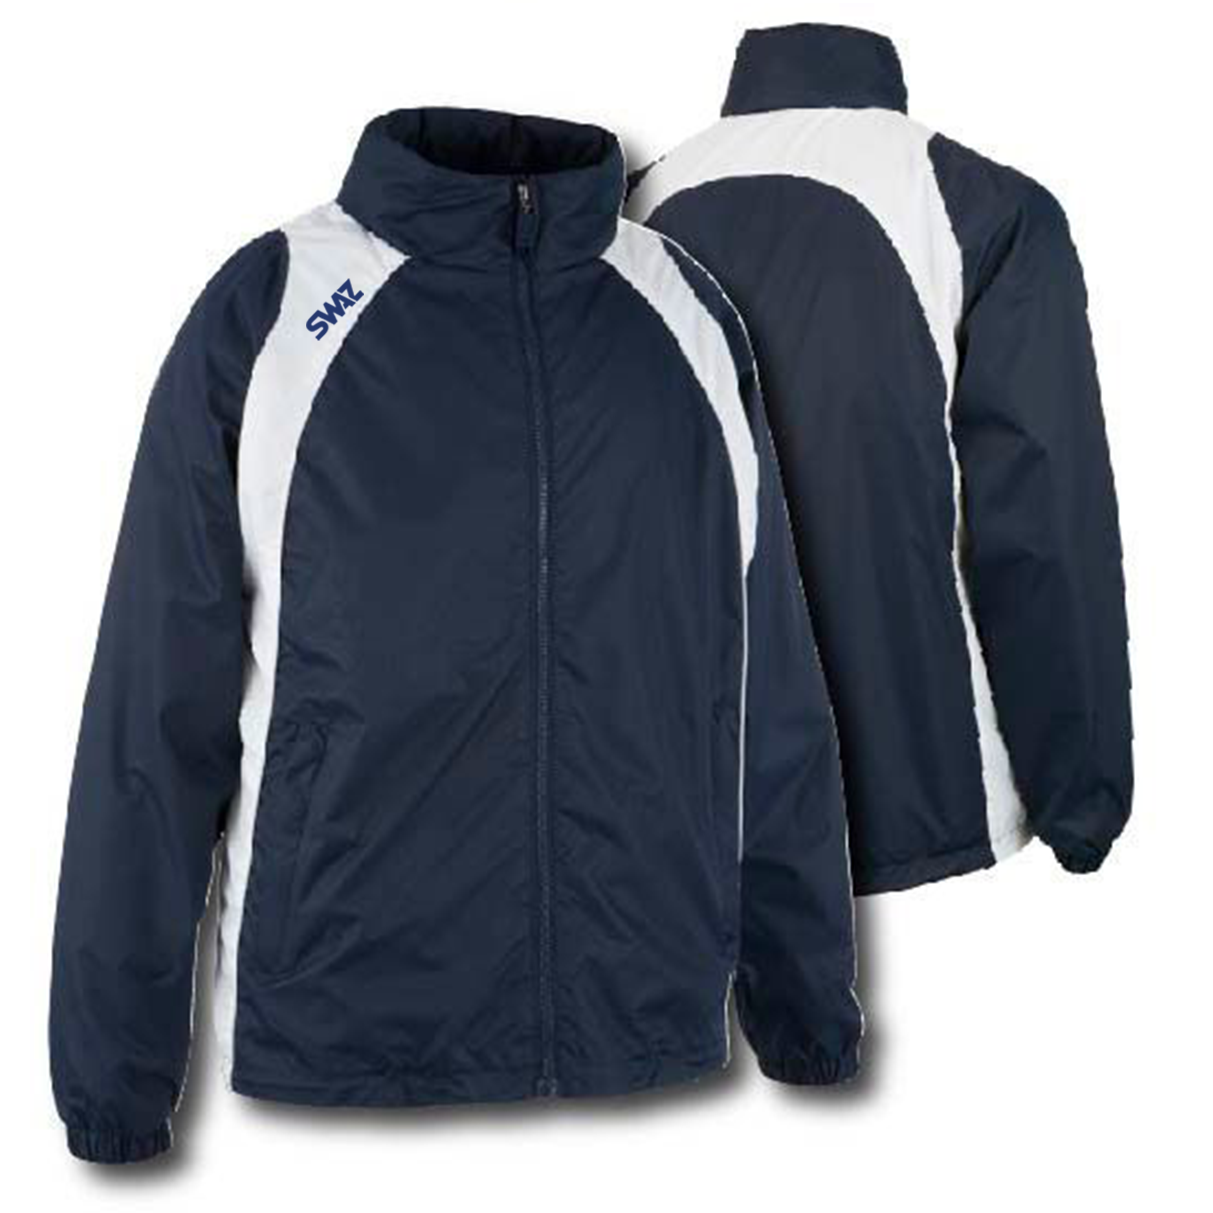 15 SWAZ Showerproof Jackets – Navy/White